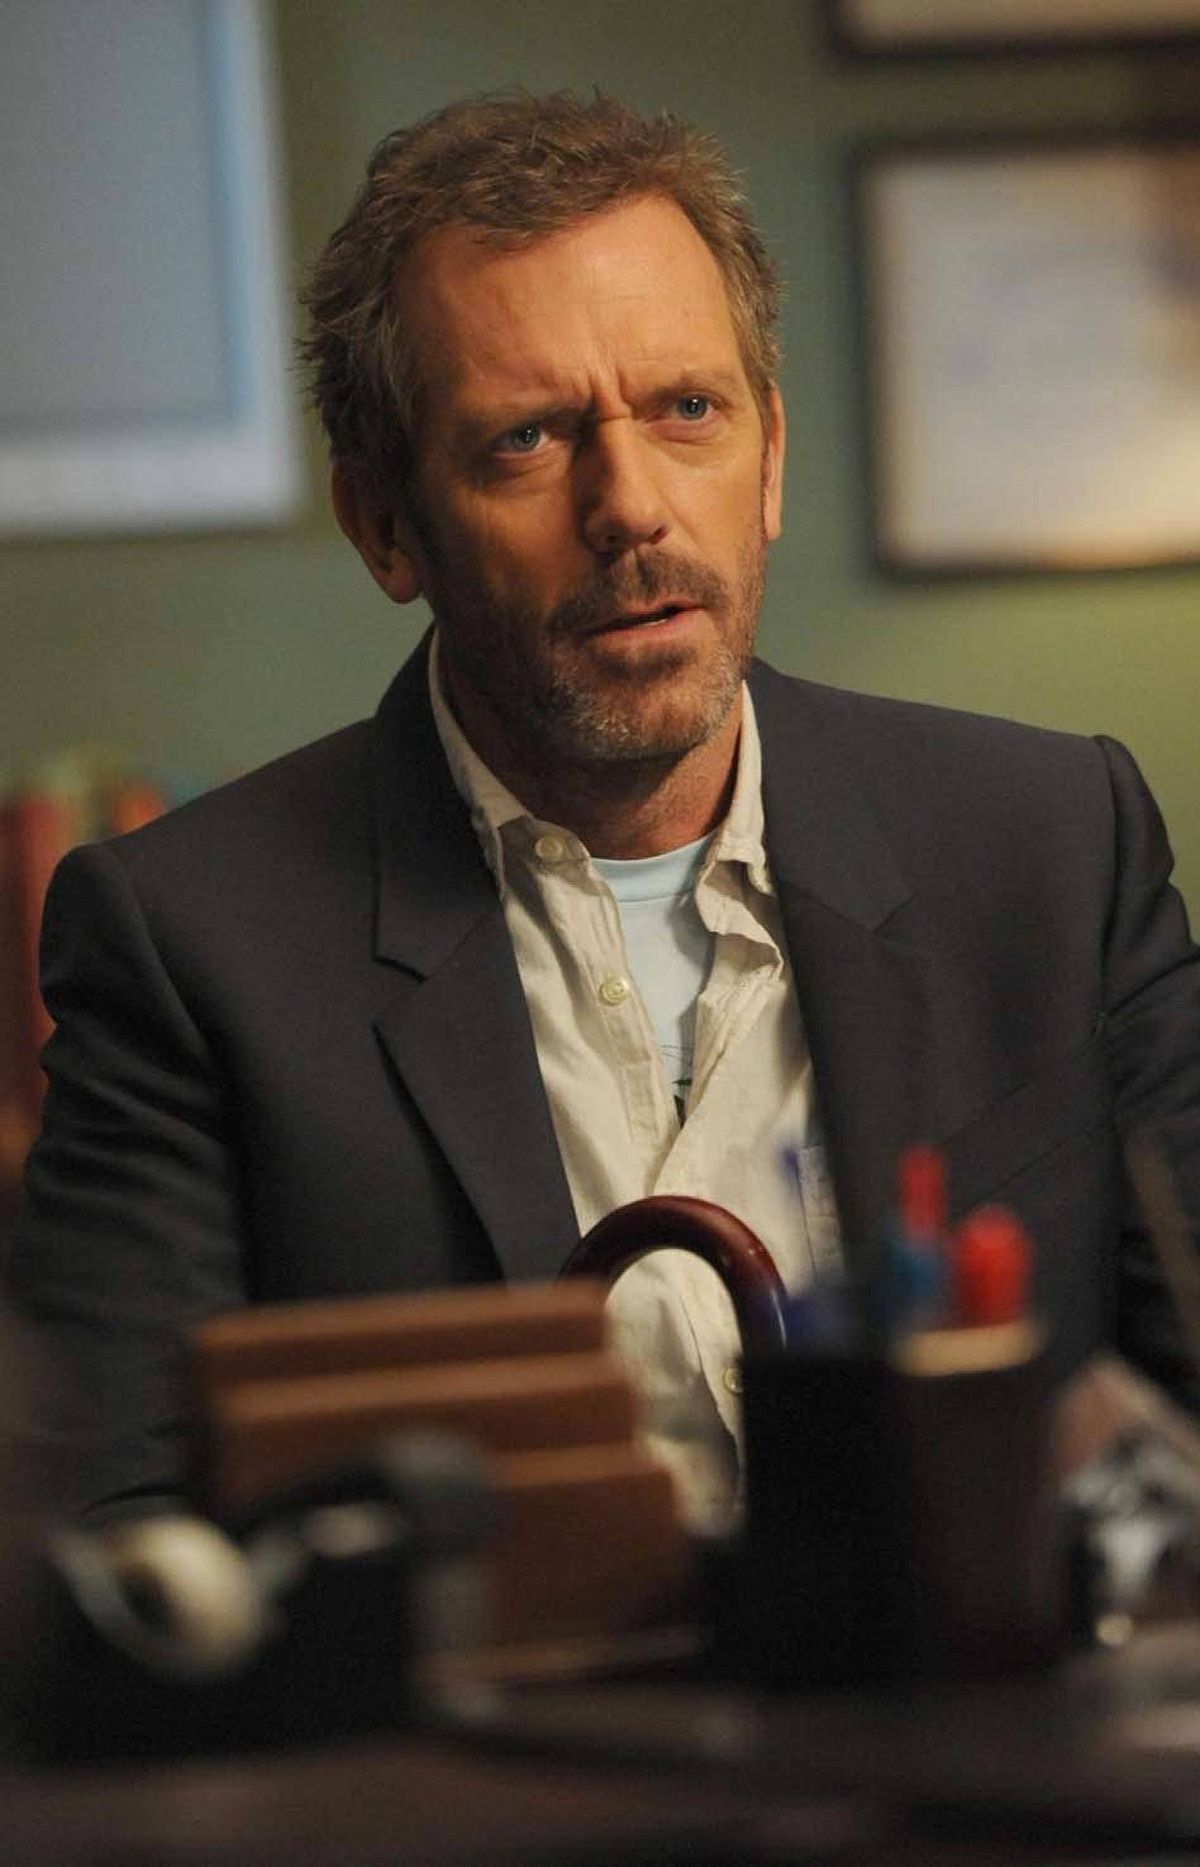 DRAMA House Fox, Global, 9 p.m. ET/PT Where's House? With only three episodes remaining in this popular drama, the titular bad-tempered medical genius, played by Hugh Laurie, has abandoned his hospital duties and headed off on a road trip with his cancer-stricken colleague Wilson (Robert Sean Leonard). With the mad medic in absentia, his staff is forced to treat the ailing and equally testy pathologist Dr. Peter Treiber (Jamie Elman), while making him believe that House is calling the shots. The episode was directed by veteran actor Peter Weller (RoboCop), who also plays a support role as a surgeon.